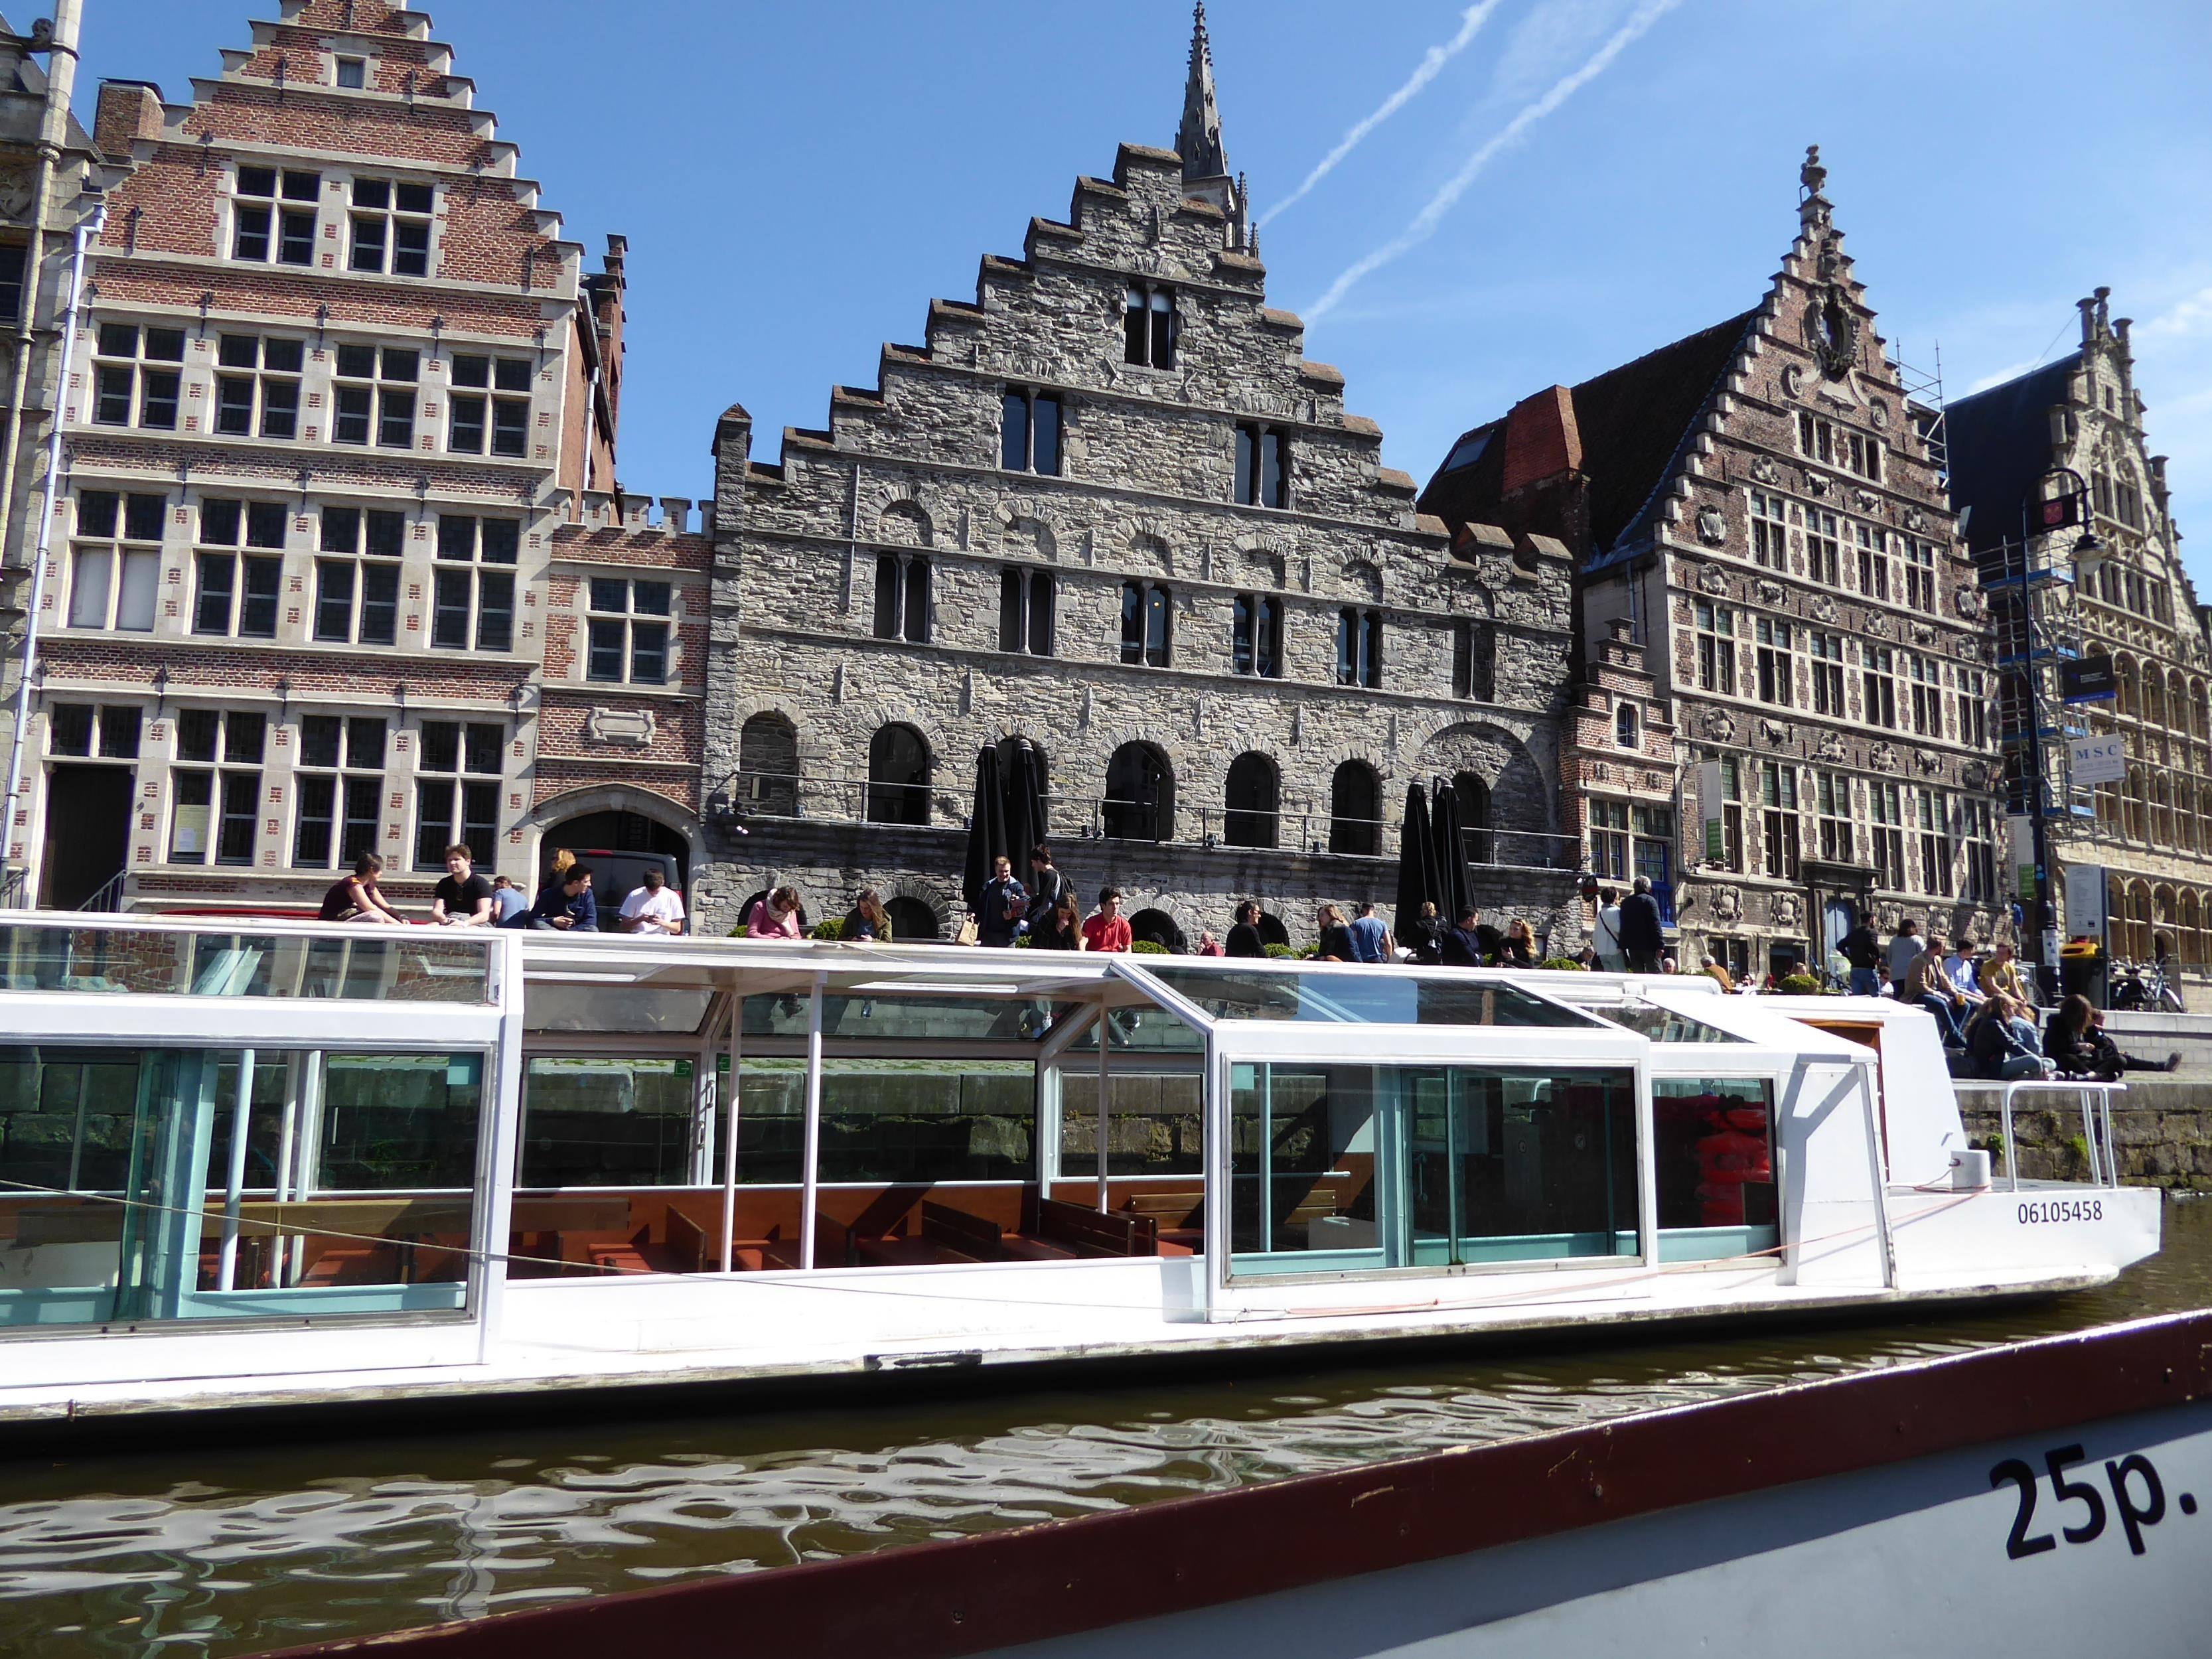 Taking a boat trip in Gent